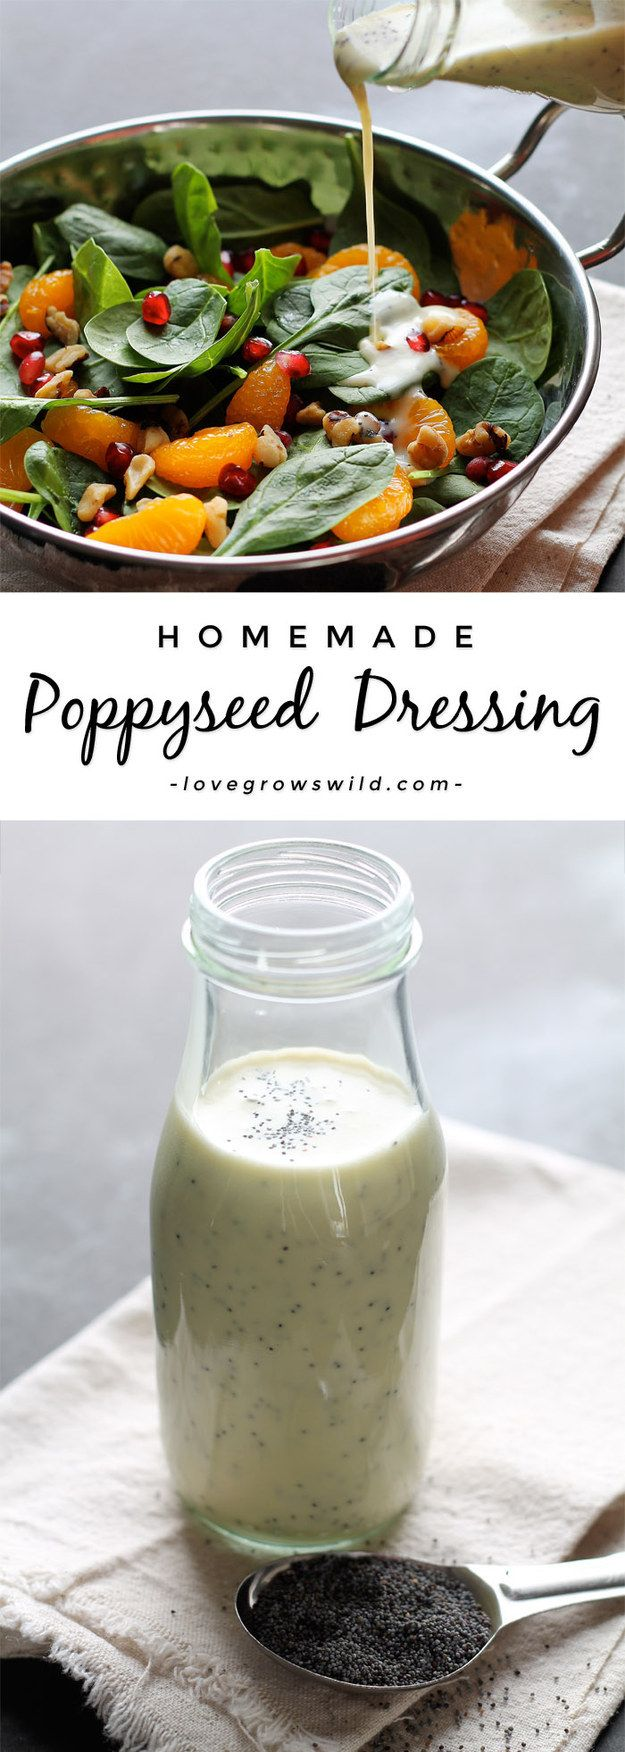 Poppyseed Dressing + 18 Healthy Homemade Salad Dressing Recipes!